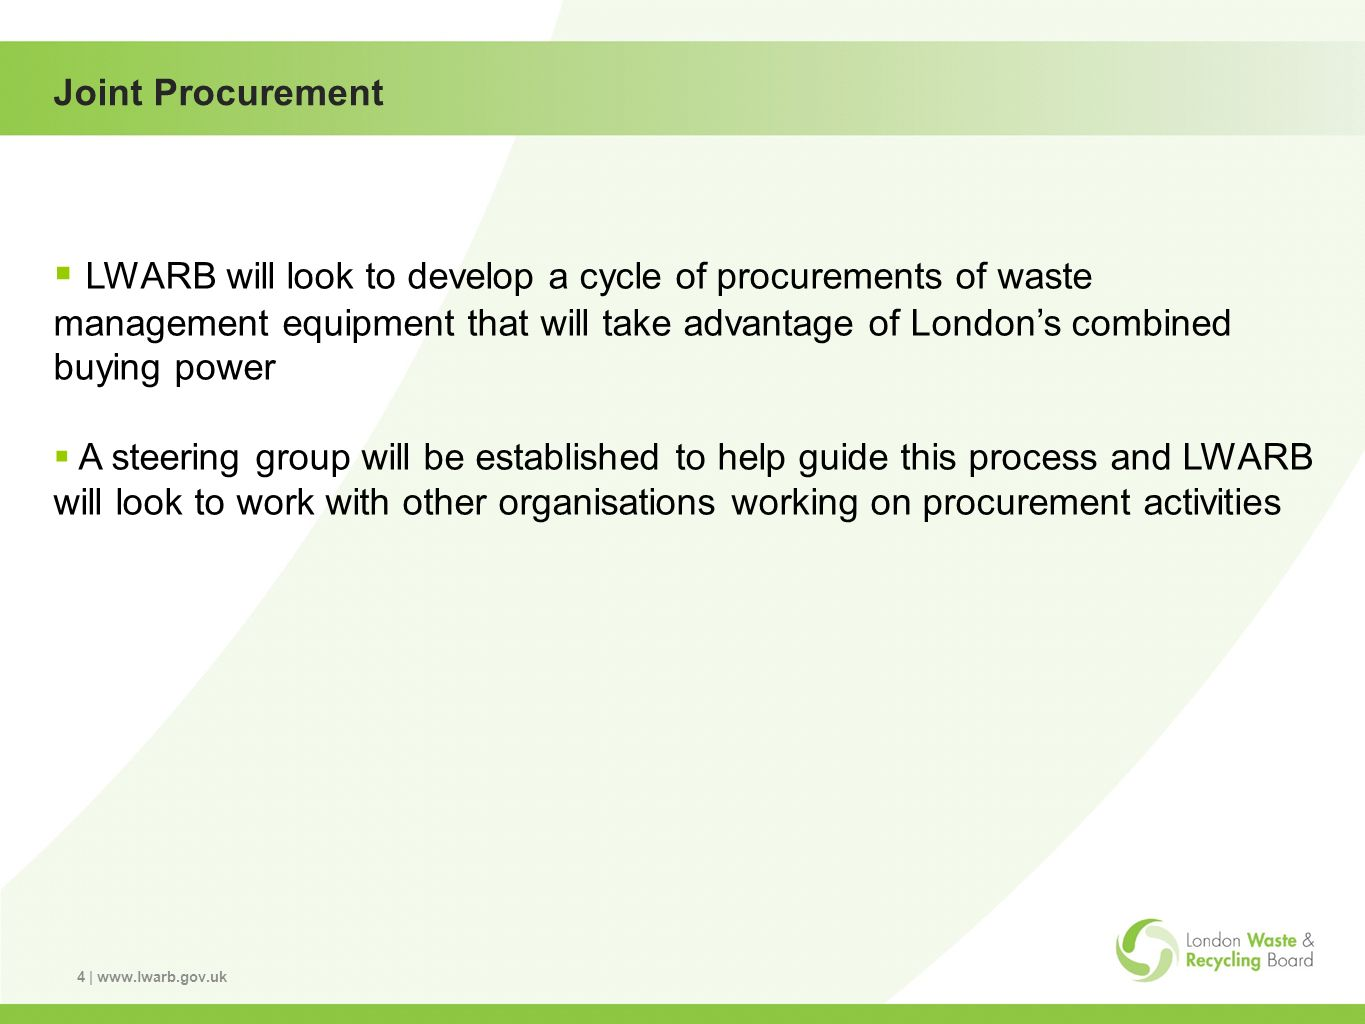 4 | www.lwarb.gov.uk Joint Procurement LWARB will look to develop a cycle of procurements of waste management equipment that will take advantage of Londons combined buying power A steering group will be established to help guide this process and LWARB will look to work with other organisations working on procurement activities